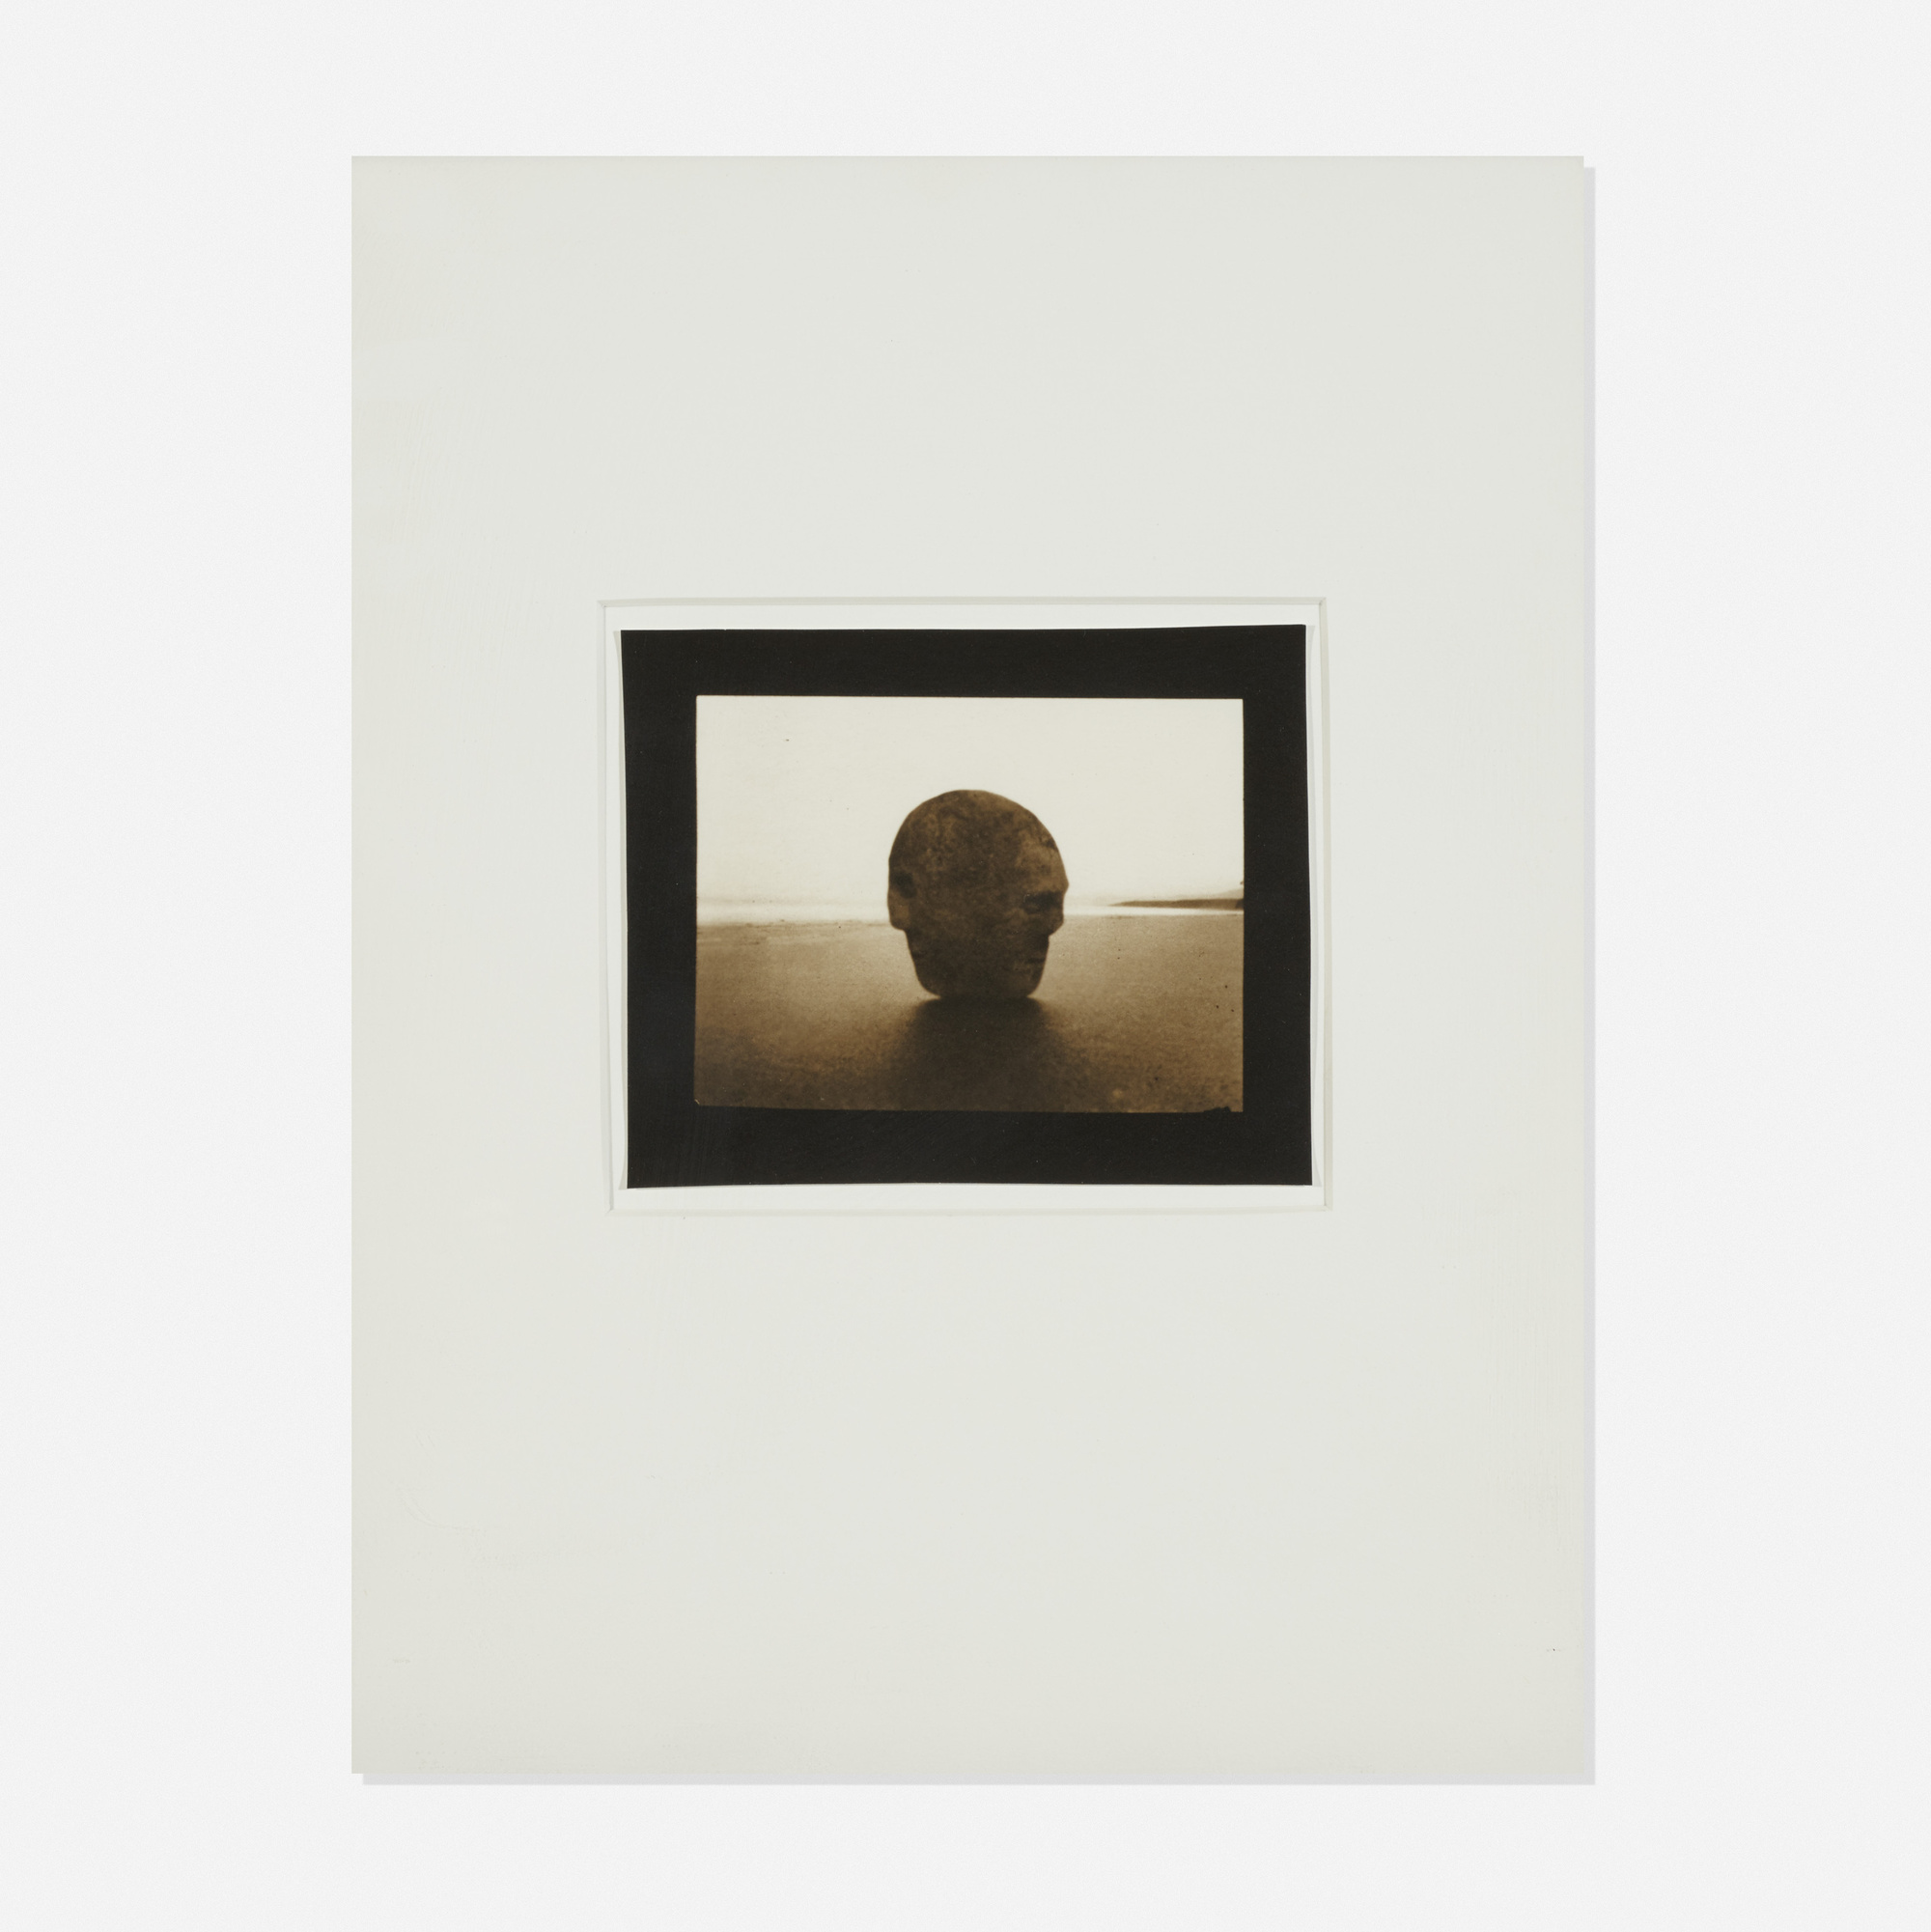 754: Ruth Thorne-Thomsen / Double Head (from the Expeditions series) (1 of 1)